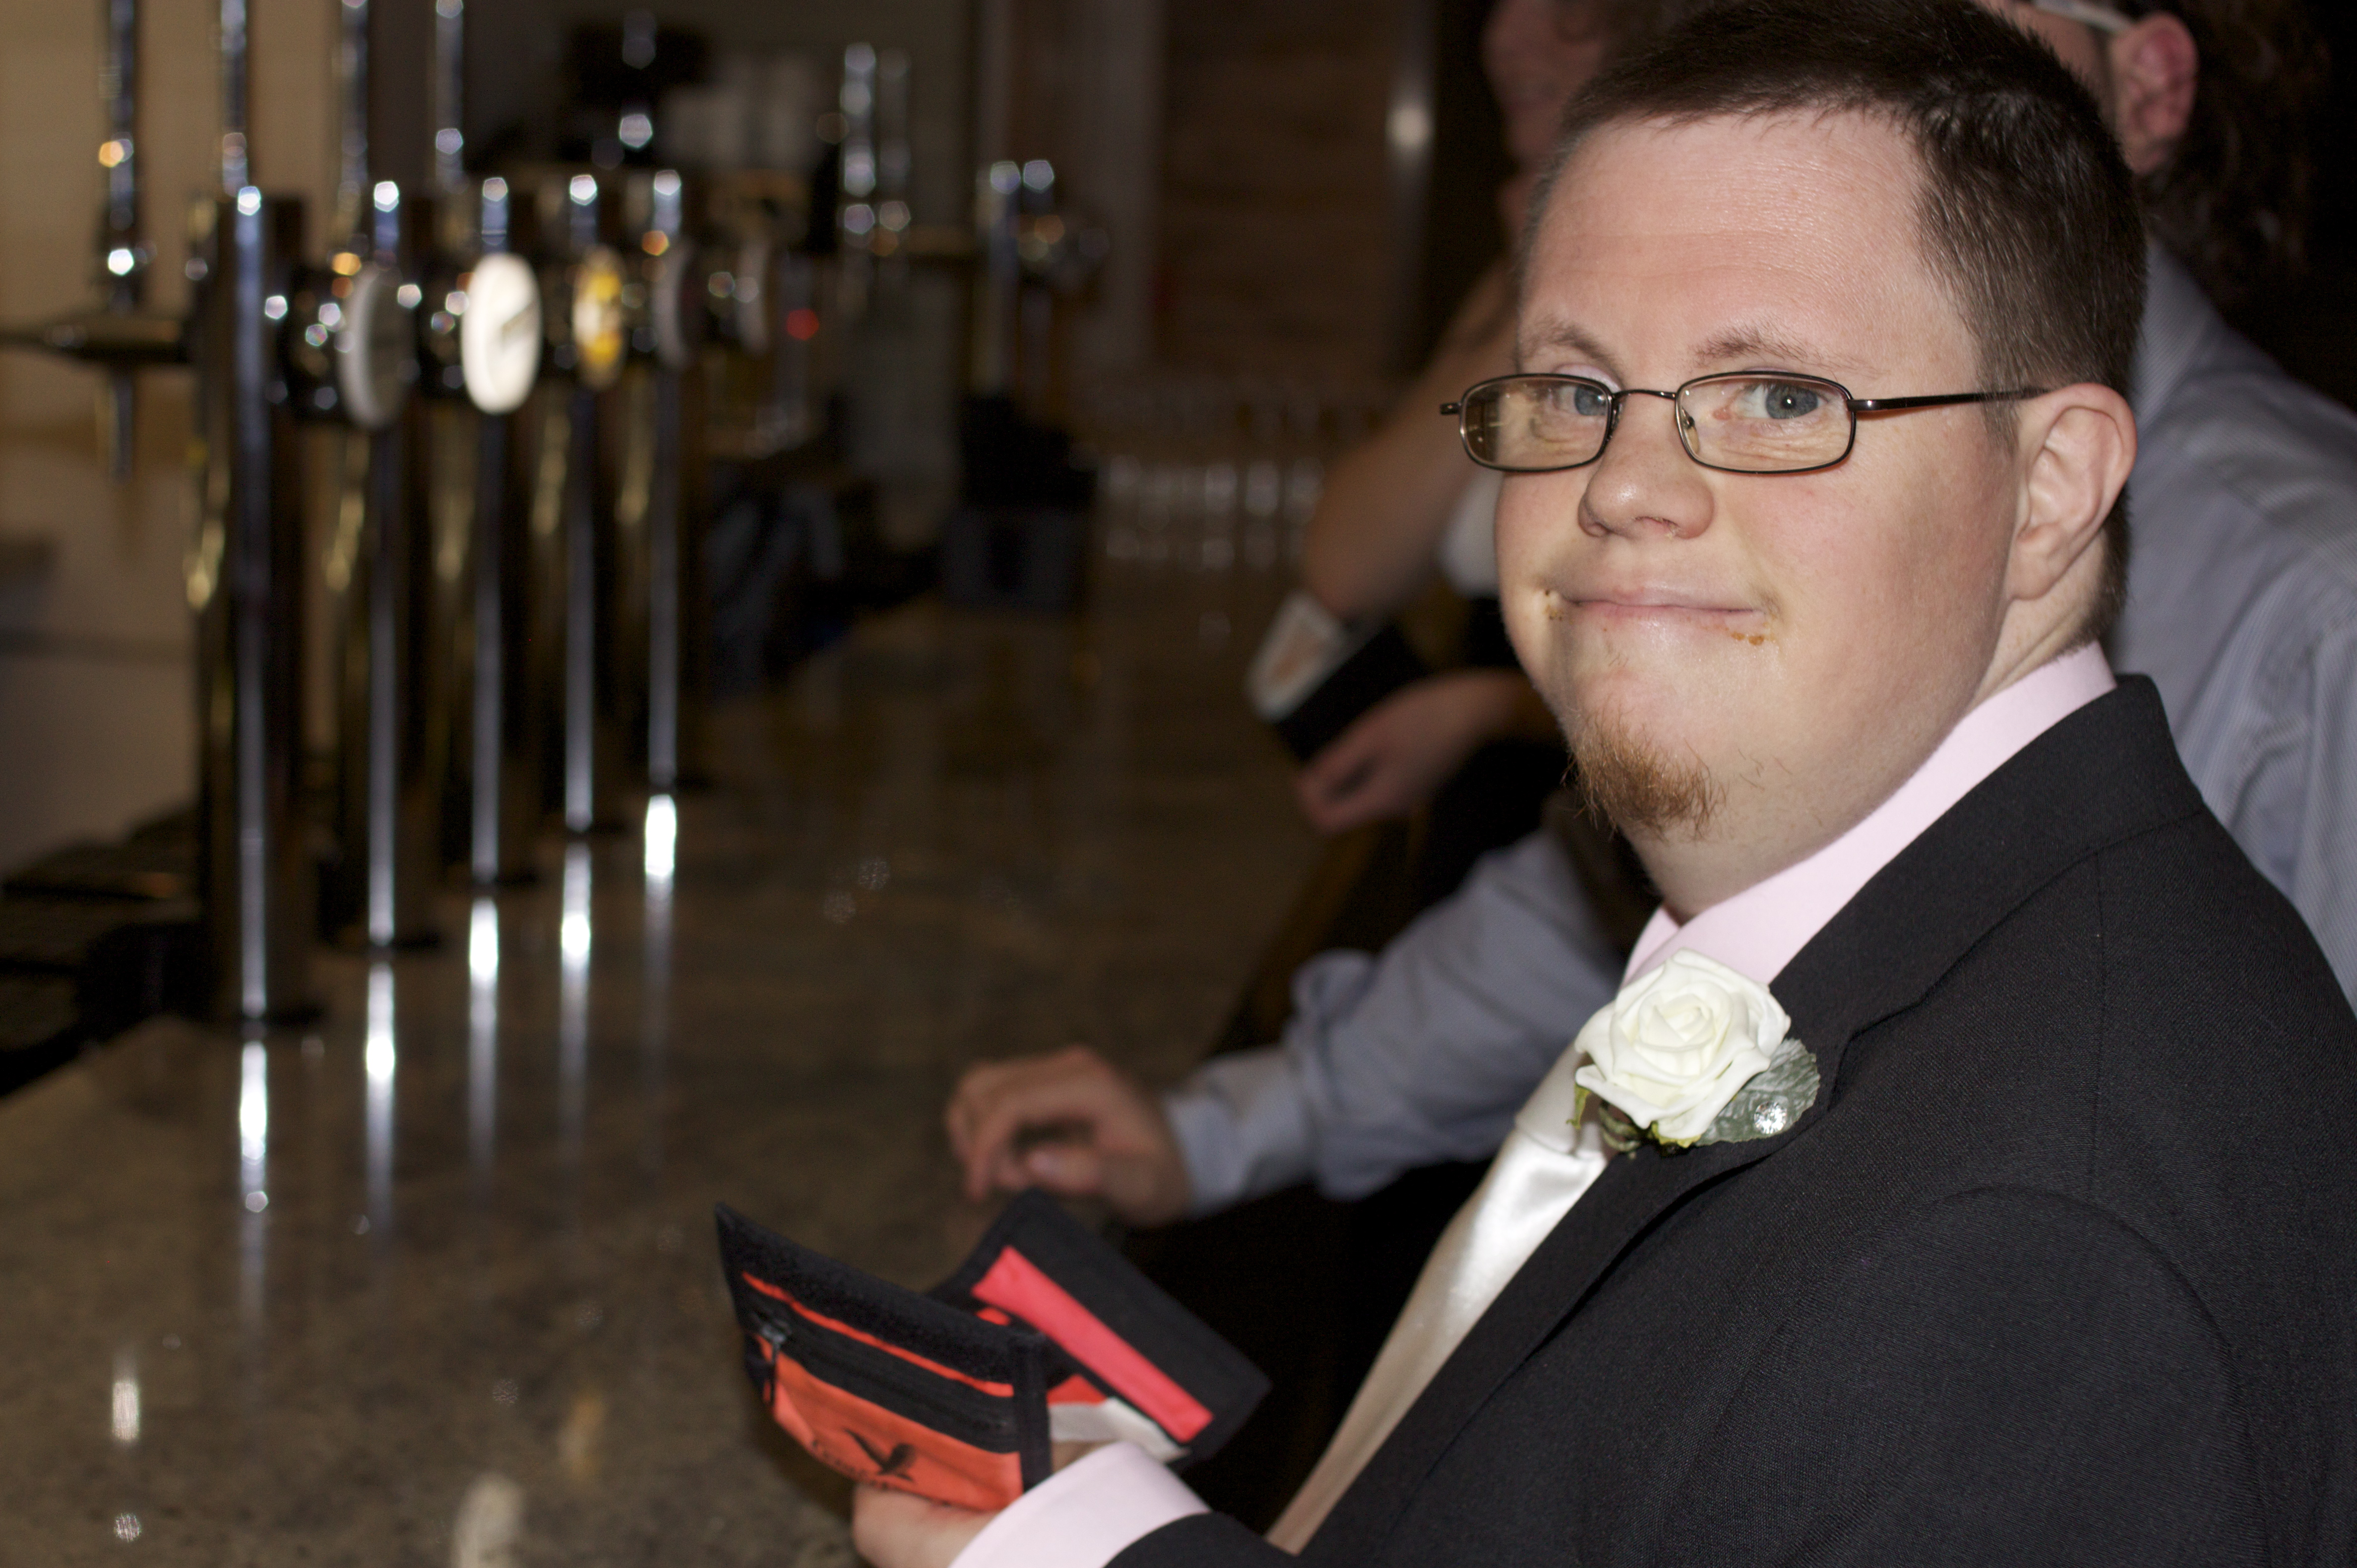 A young man in a suit stands at a bar holding his wallet, looking past the camera.